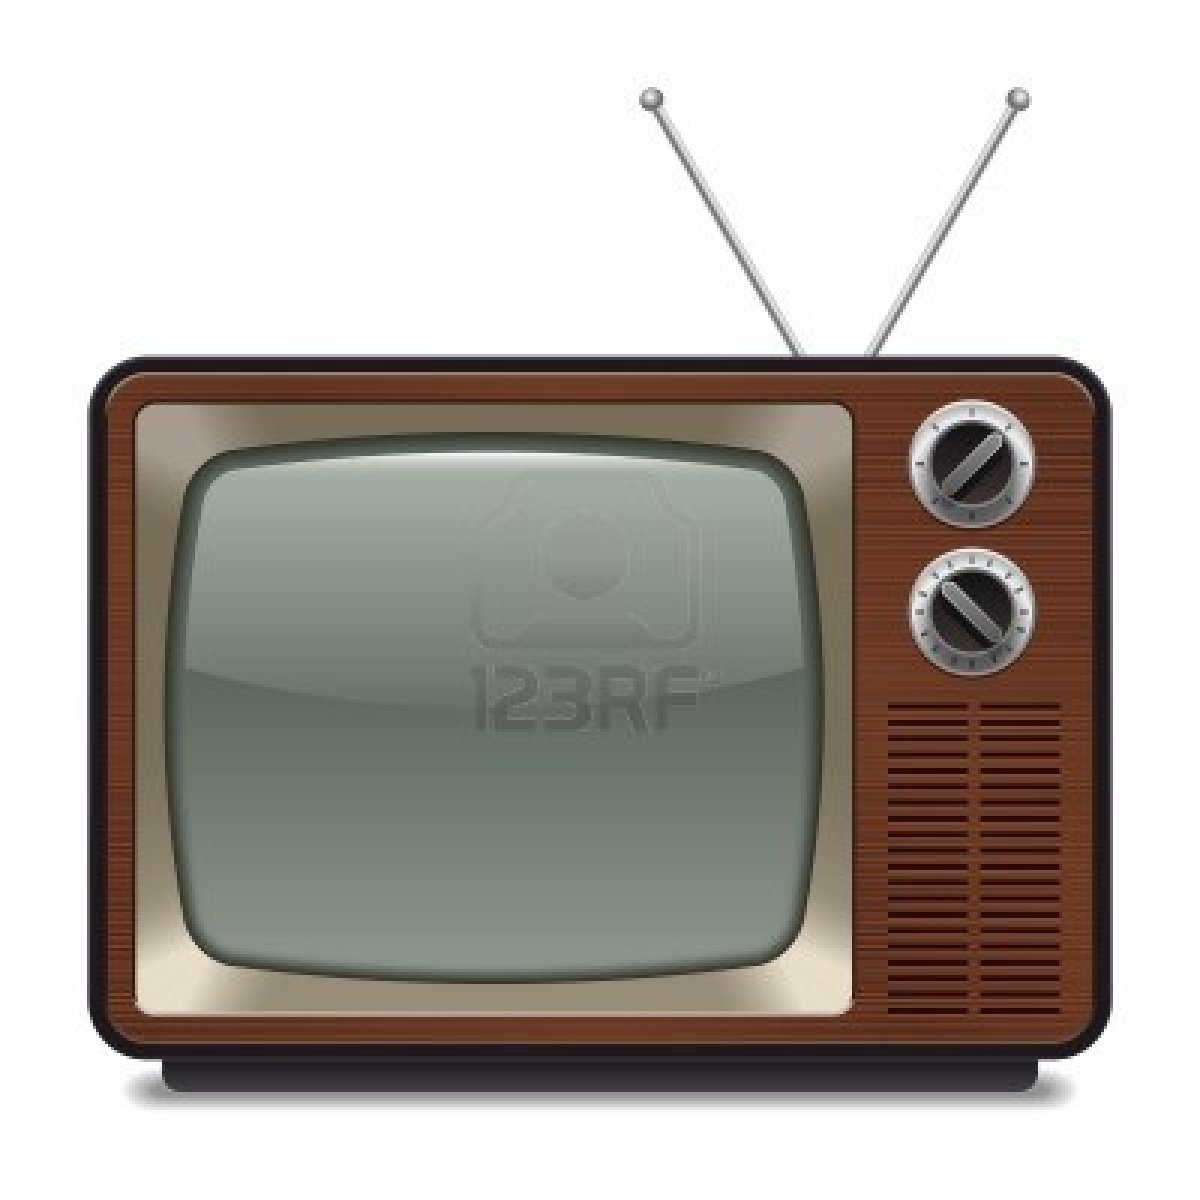 How Did Television Change the Politics of the 1950s?